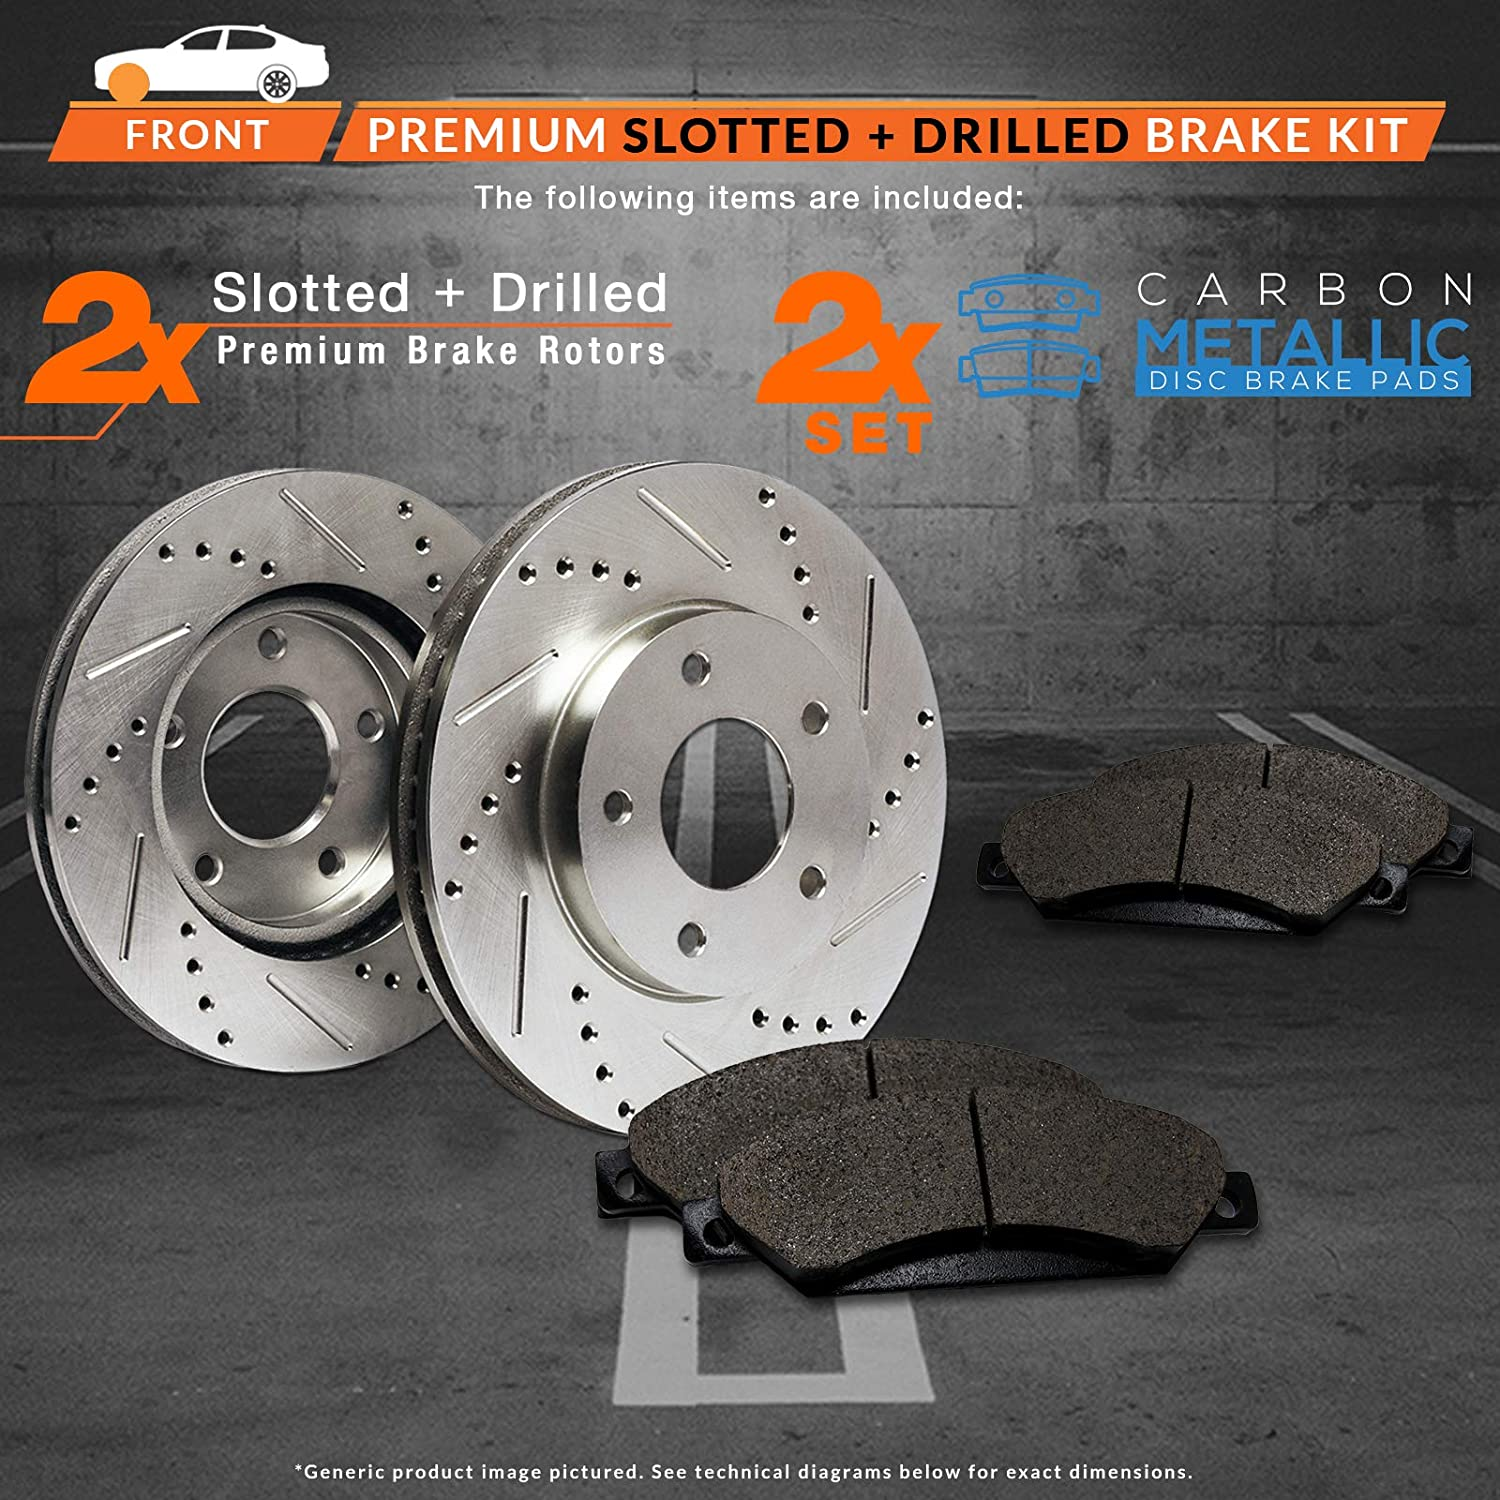 Premium Slotted Drilled Rotors + Metallic Pads Fits: 2012 12 2013 13 Honda CR-V AWD Models Max Brakes Front Performance Brake Kit TA114531